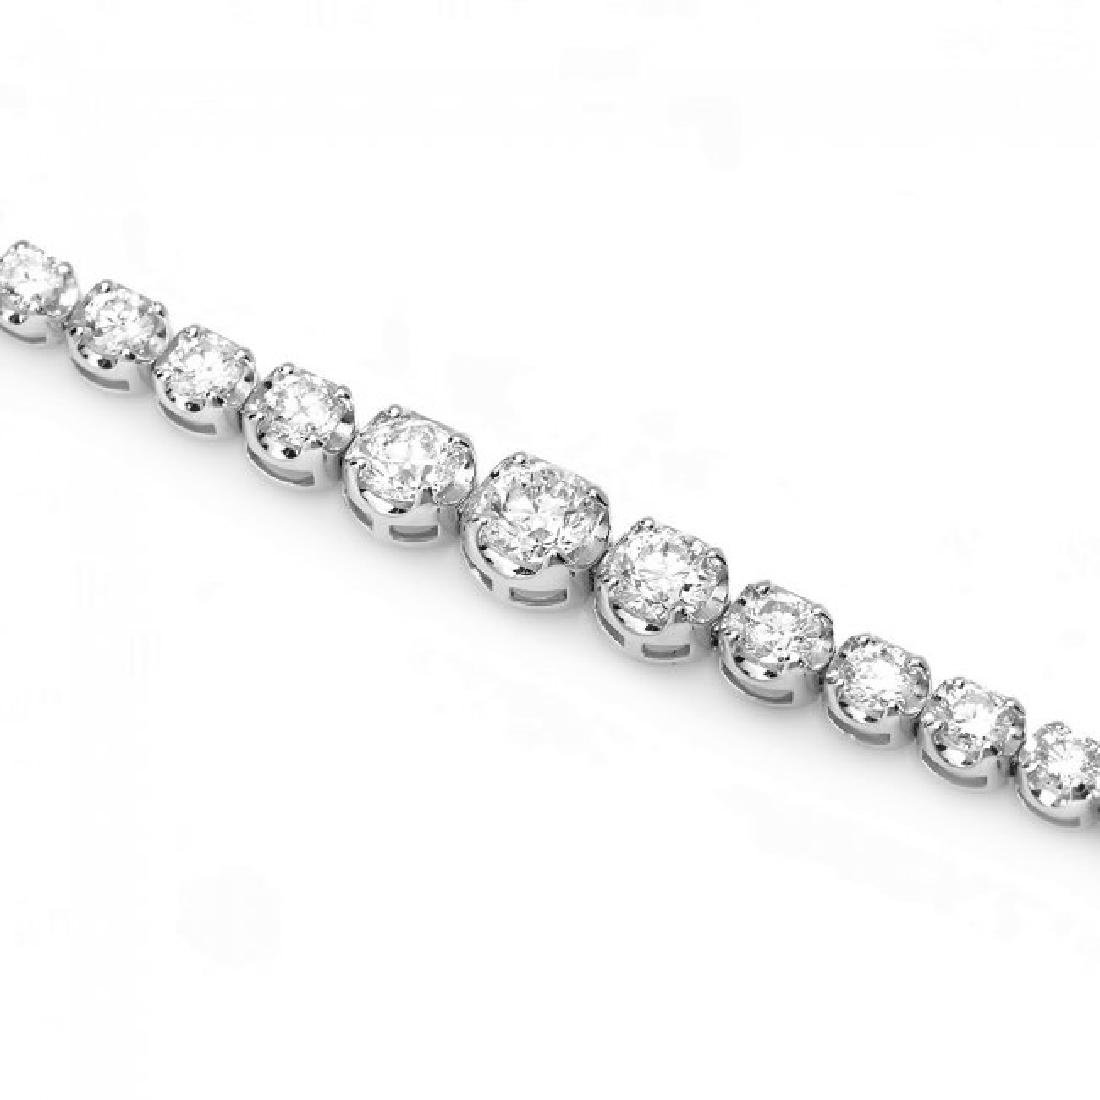 18k White Gold 4.50ct Diamond Bracelet - 3